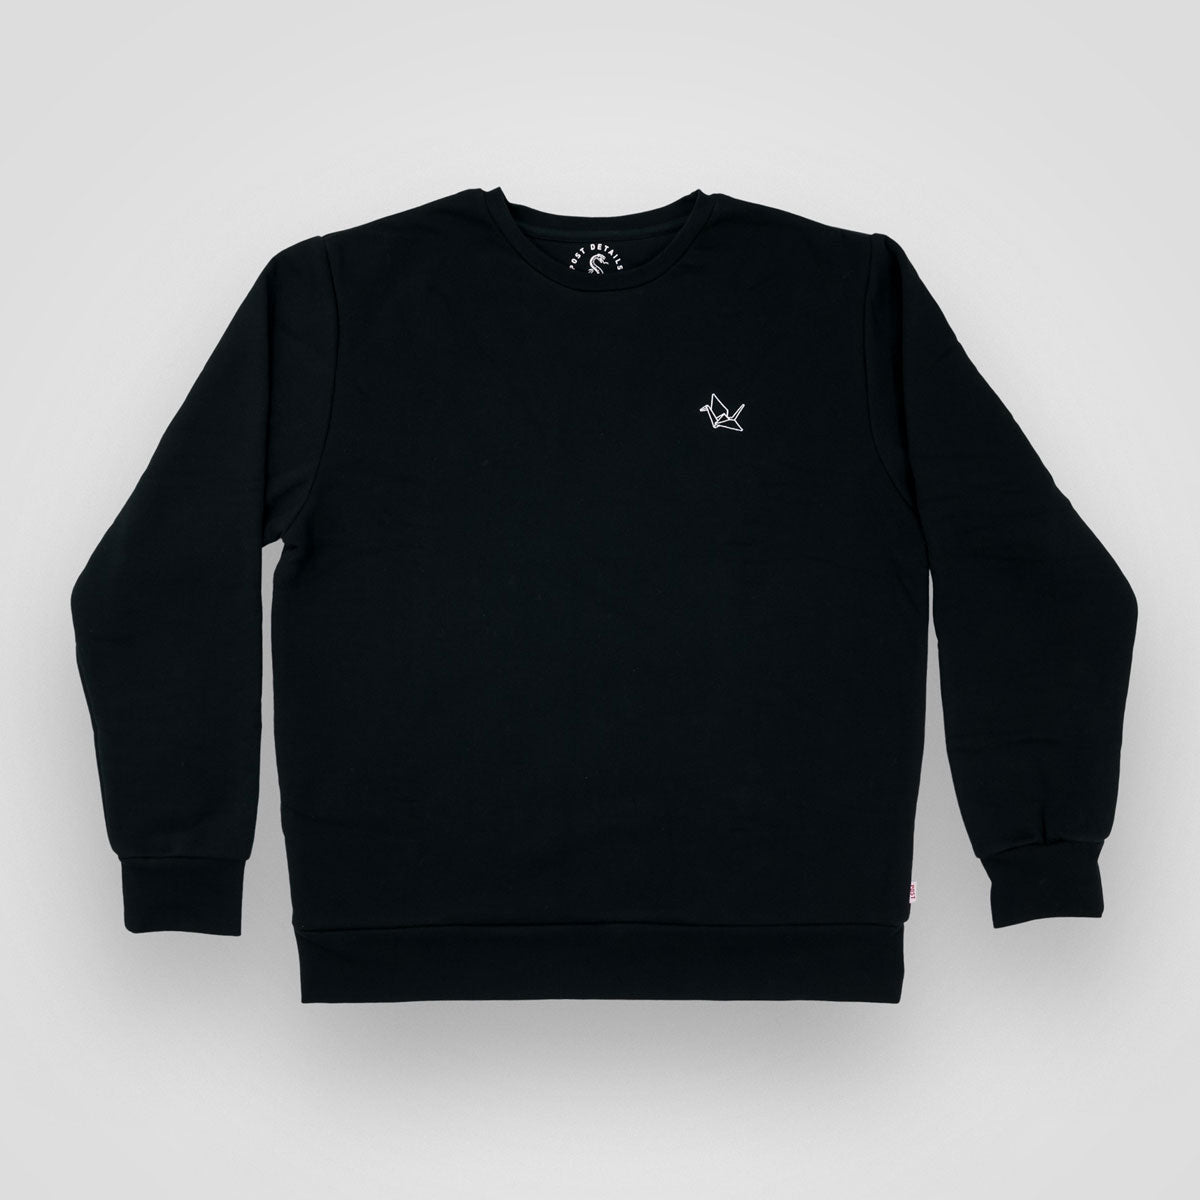 Almost Dead Origami crew neck - Black